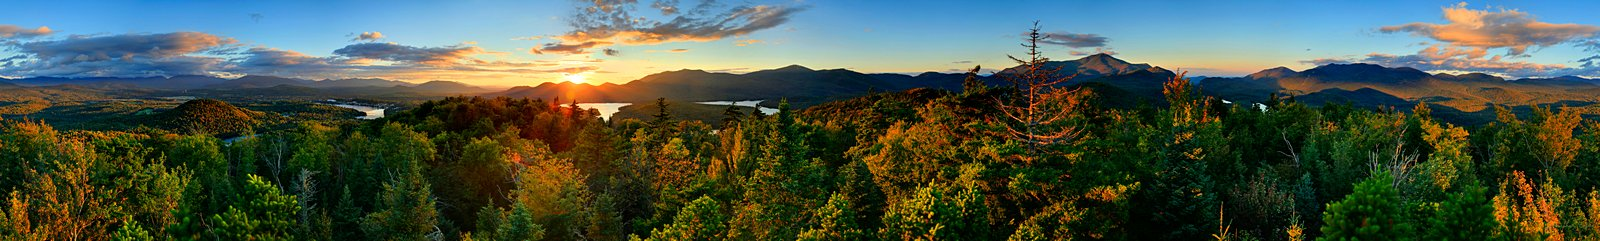 360 degree panorama,panorama,treetop,Mt Whitney,Whitney Mt,Lake Placid,village,High Peaks,Adirondack mountains,, photo